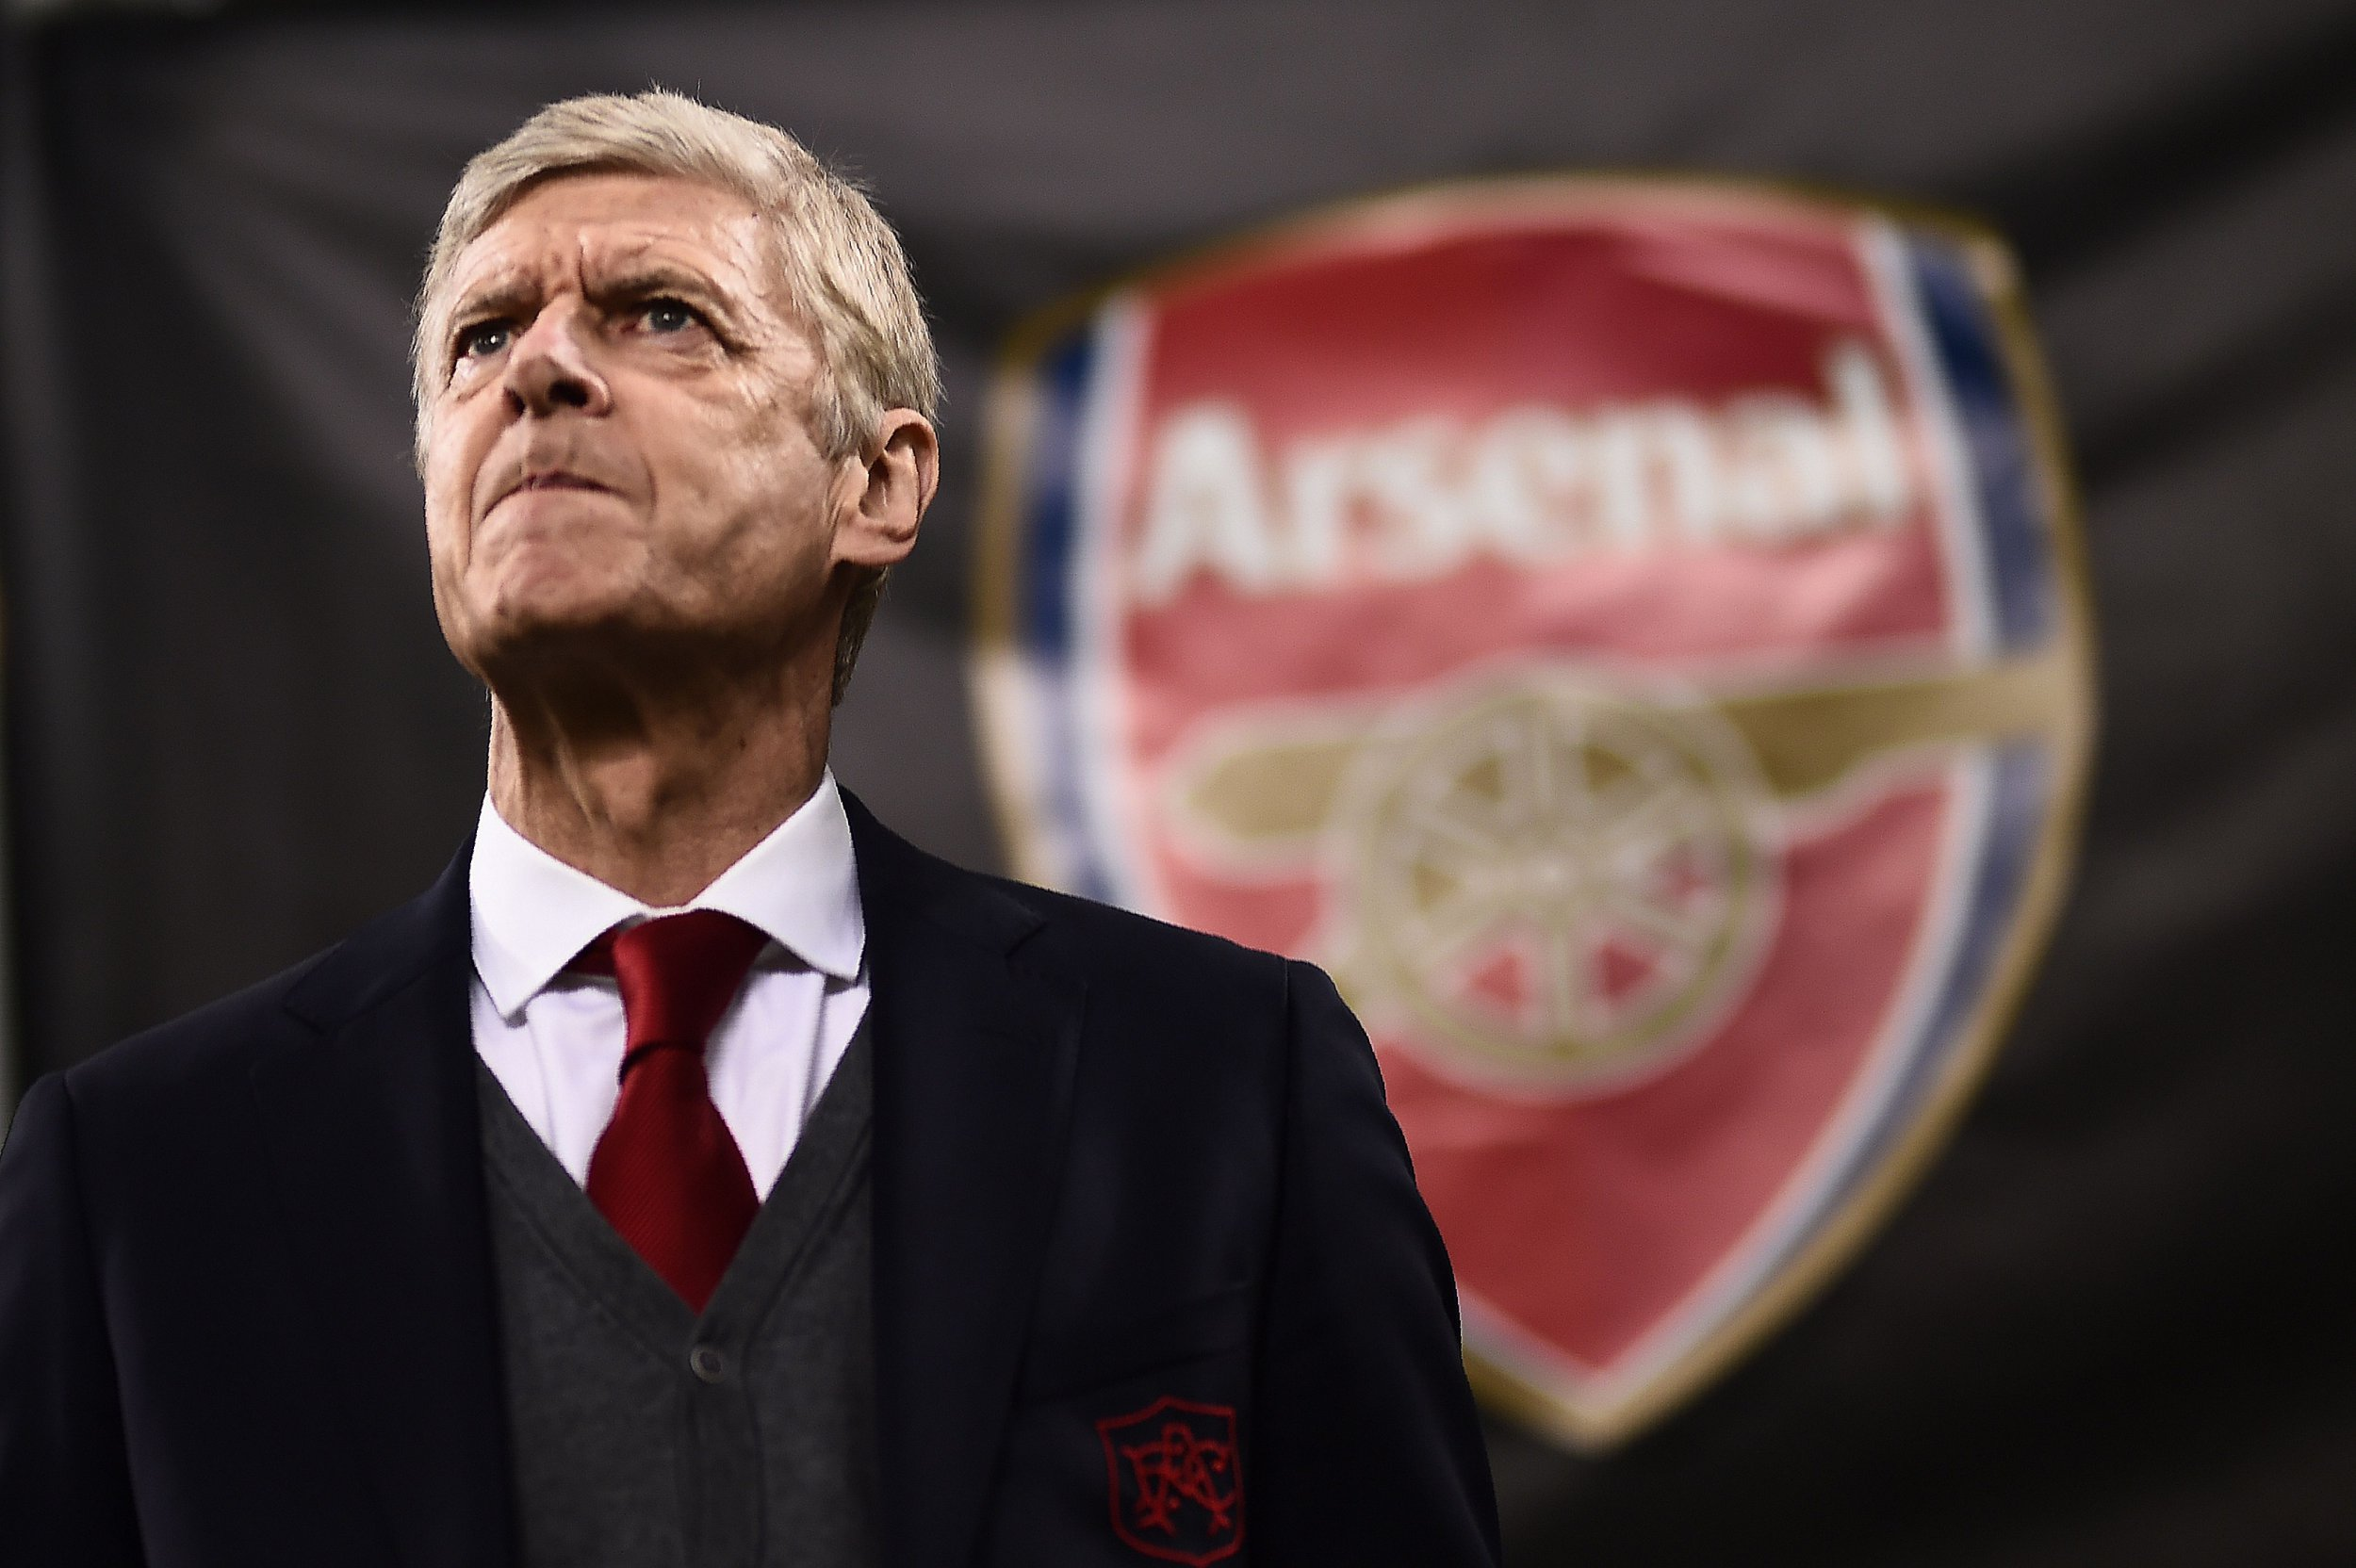 TOPSHOT - Arsenal's coach Arsene Wenger from France looks on during the UEFA Europa League round of 16 first-leg football match AC Milan Vs Arsenal at the 'San Siro Stadium' in Milan on March 8, 2018. / AFP PHOTO / MARCO BERTORELLOMARCO BERTORELLO/AFP/Getty Images